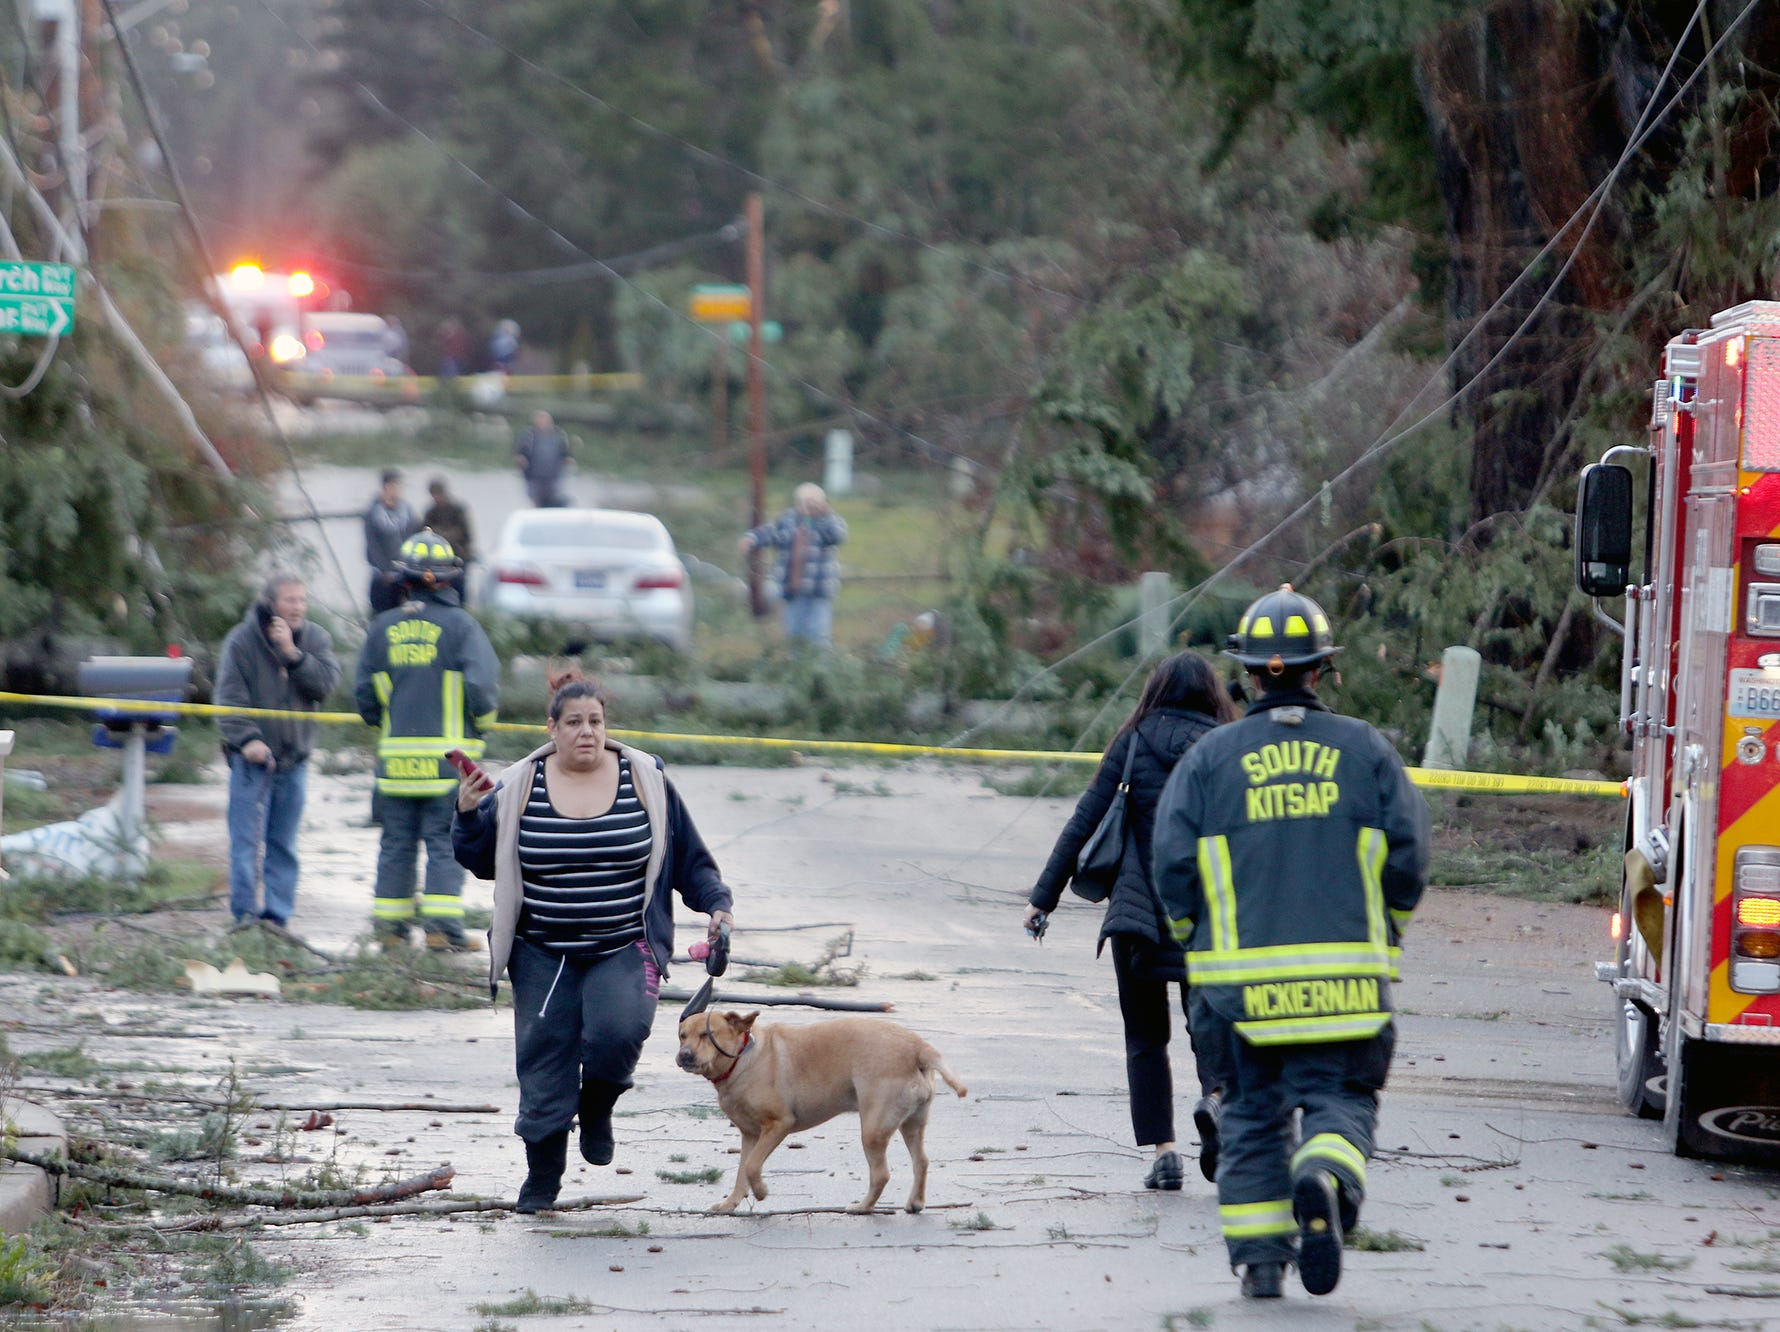 The scene on Harris Road in Port Orchard, where a tornado touched down Tuesday afternoon.